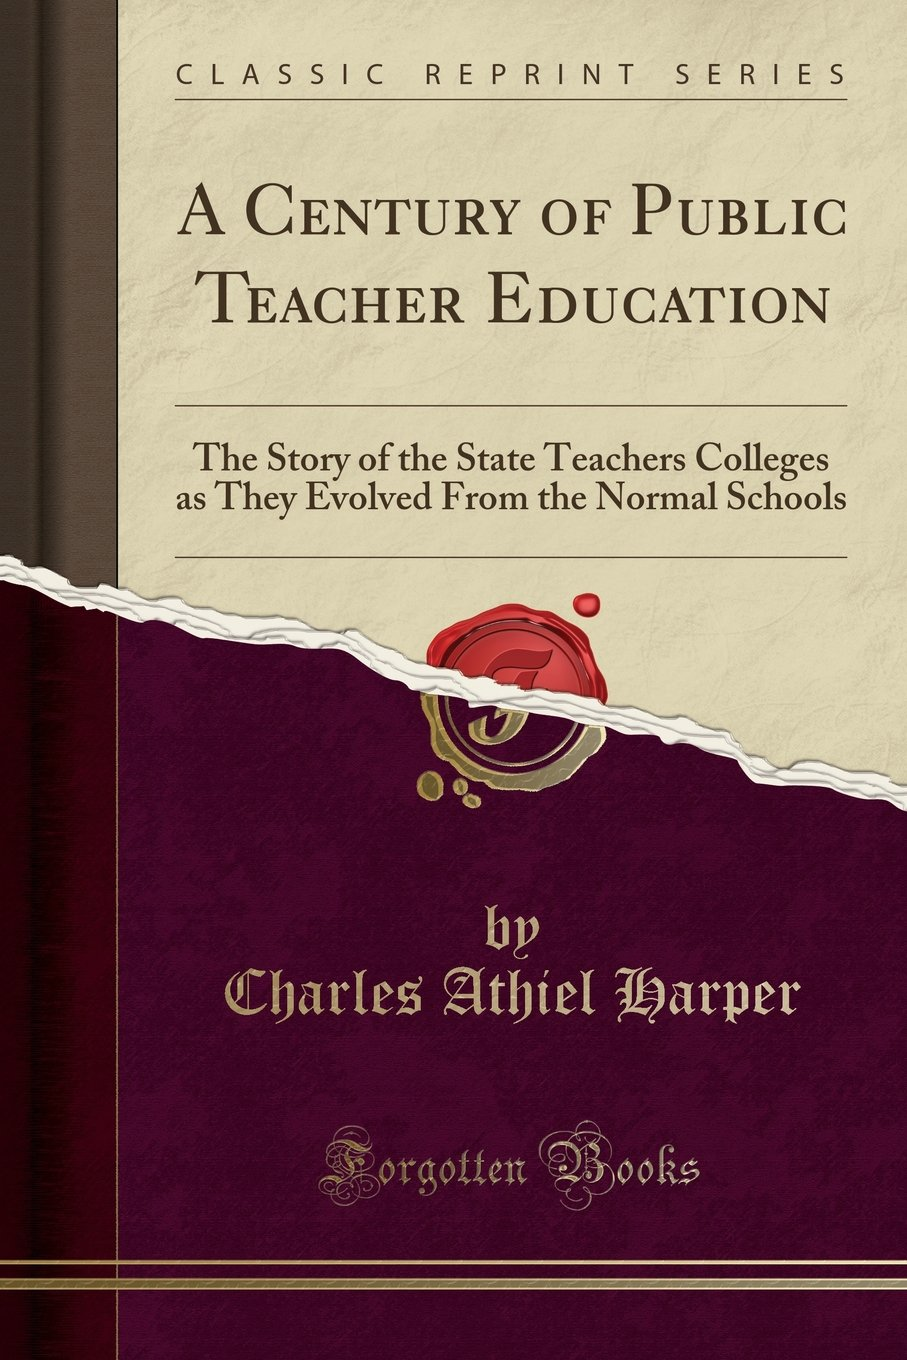 A Century of Public Teacher Education: The Story of the State Teachers Colleges as They Evolved From the Normal Schools (Classic Reprint) ebook